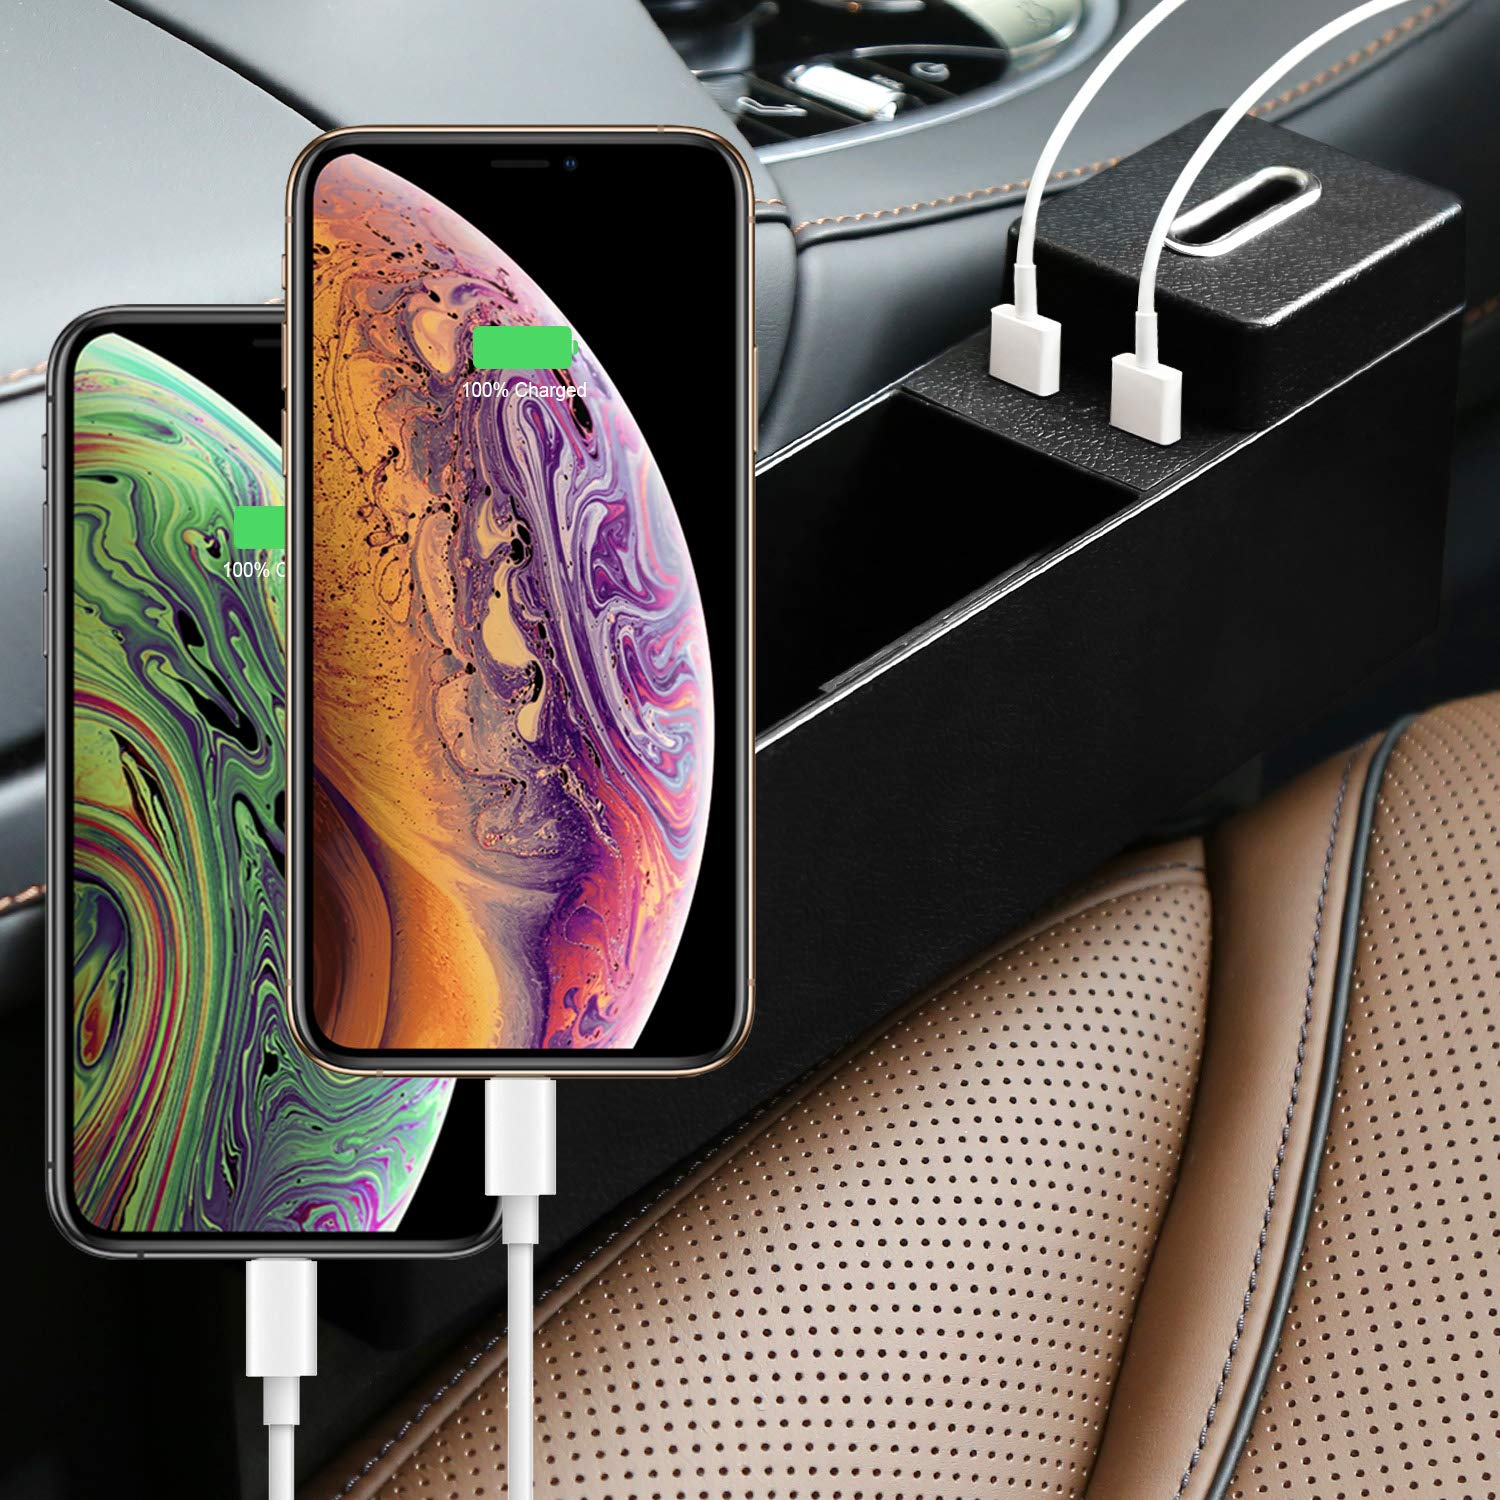 AUTMOR Car Gap Filler,Car Gap Organizer,Car Seat Side Pocket,Car Pocket Organizer with Coin Box and 2 USB Charging Hub for Cellphones,Keys,Cards,Wallets,Coins 1 Pack